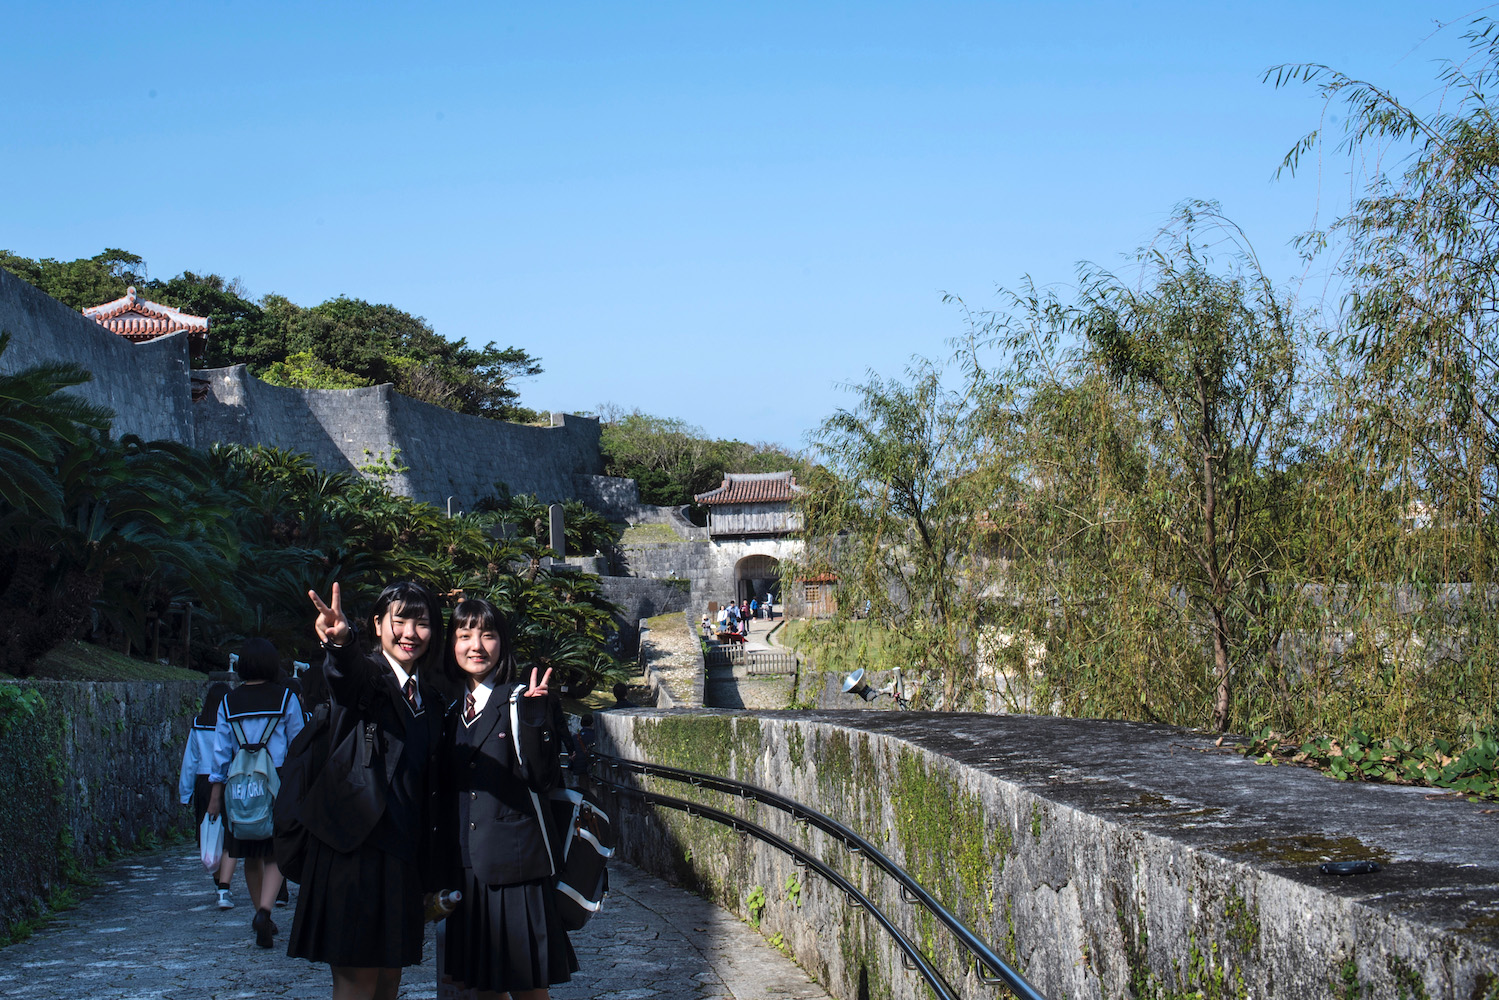 Japanese girls at Shuri Castle in Naha, Okinawa